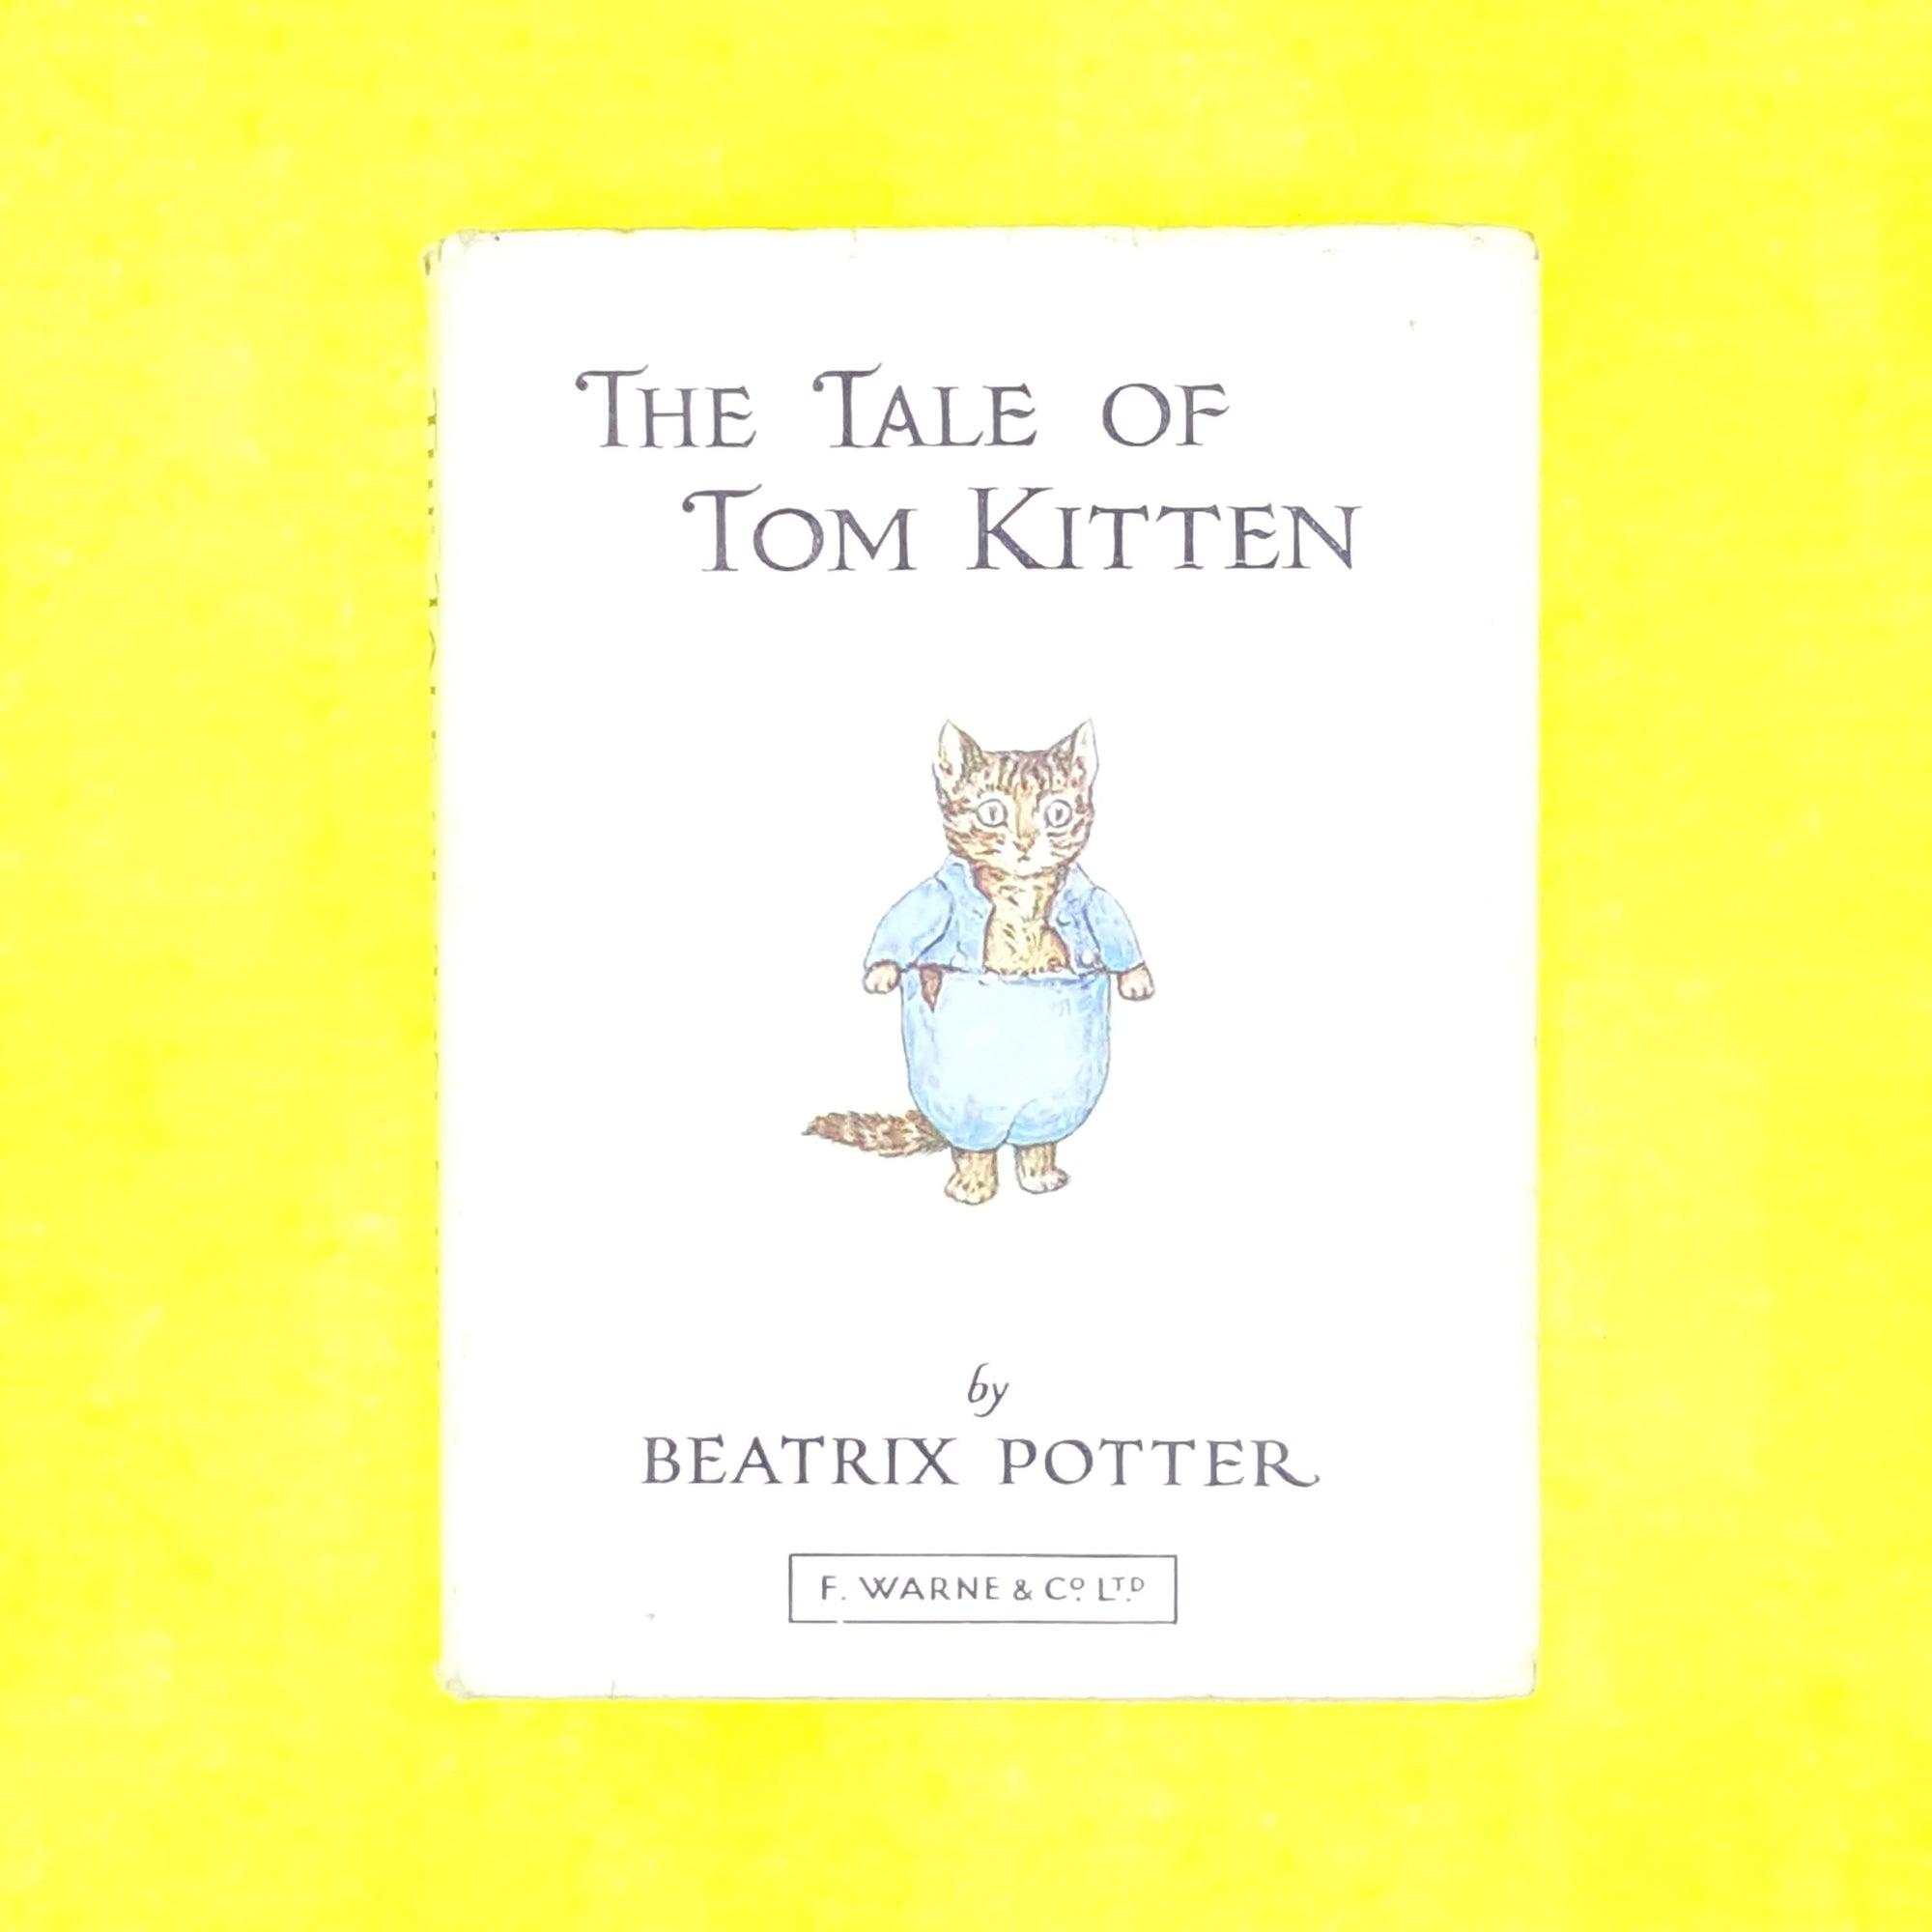 books-childrens-antique-patterned-decorative-illustrated-classic-beige-thrift-country-house-library-beatrix-potter-old-tom-kitten-vintage-